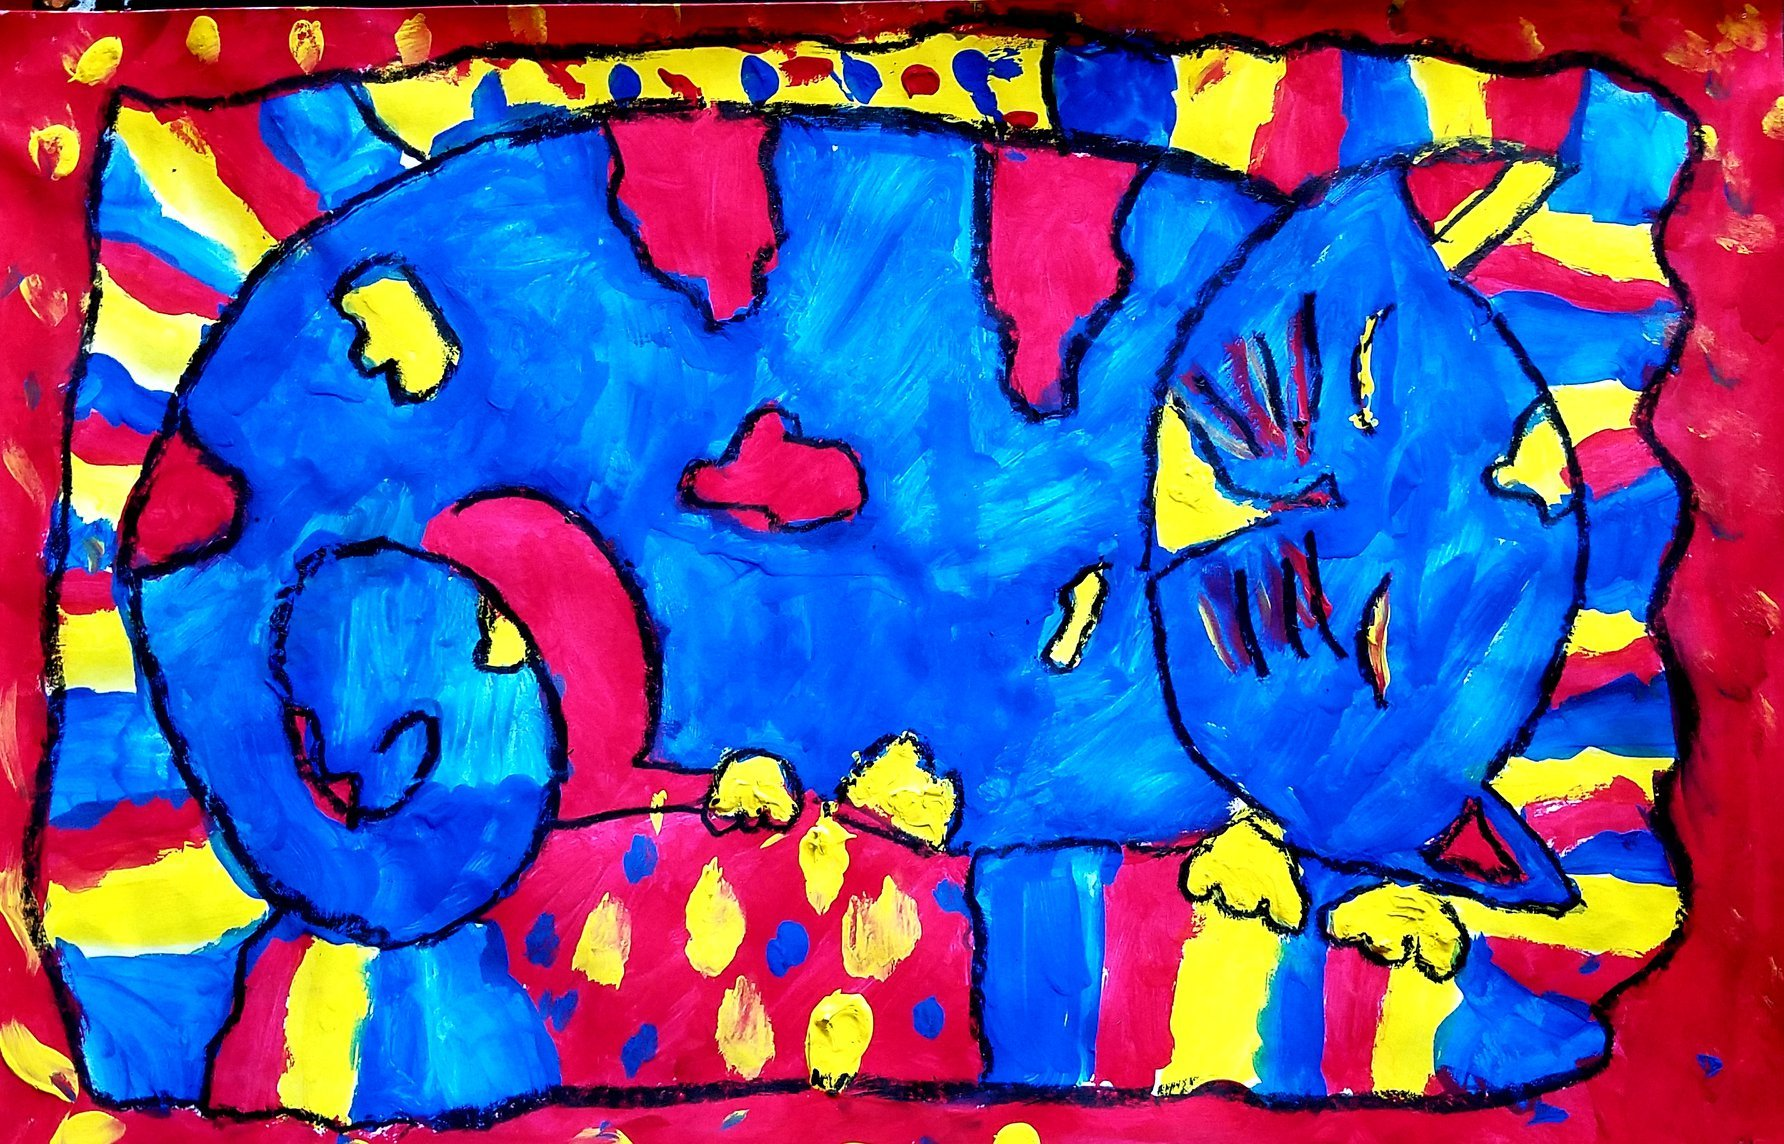 Julia R, Jefferson Elementary School, Grade 3, Tempera and Oil pastel, Kim Gremillion